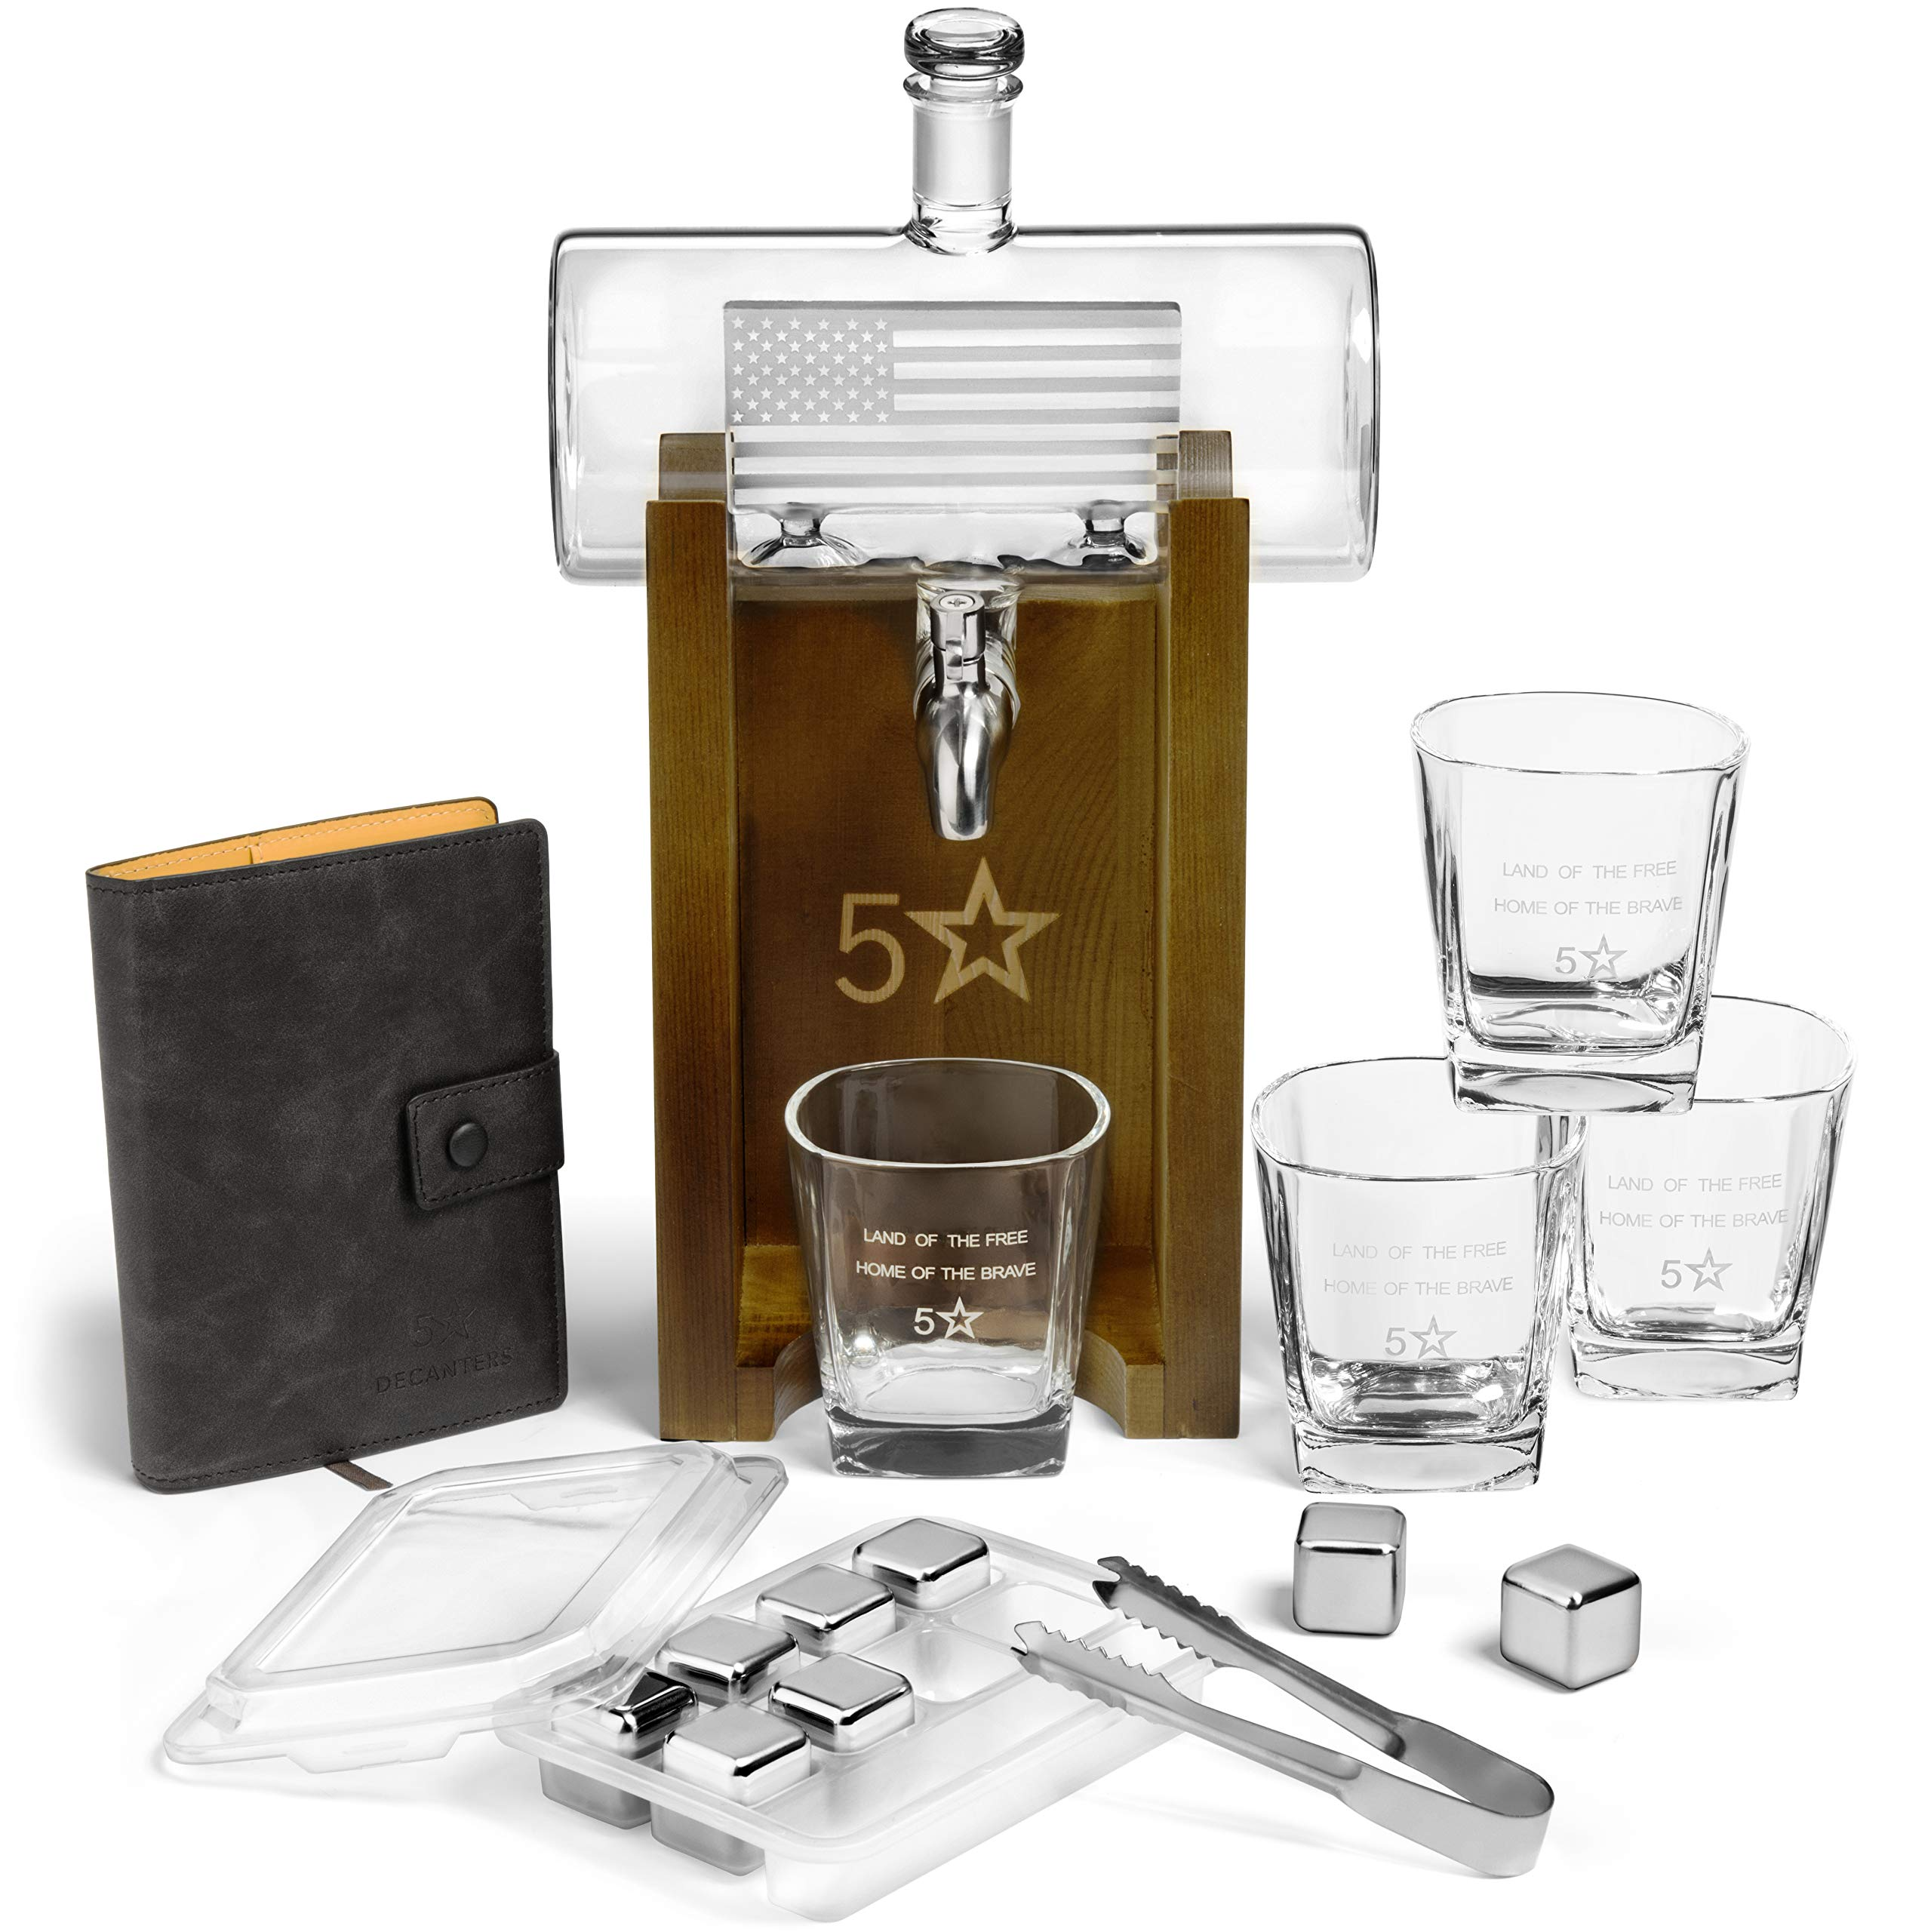 5 Star Decanters, 850mL Scotch Whiskey American Flag Decanter Set - Includes Liquor Dispenser, 4 Etched Whiskey Glasses, Wooden Stand, Stainless Steel Ice Cubes, Ice Tongs, Drinking Memento Booklet by 5 Star Decanters (Image #1)